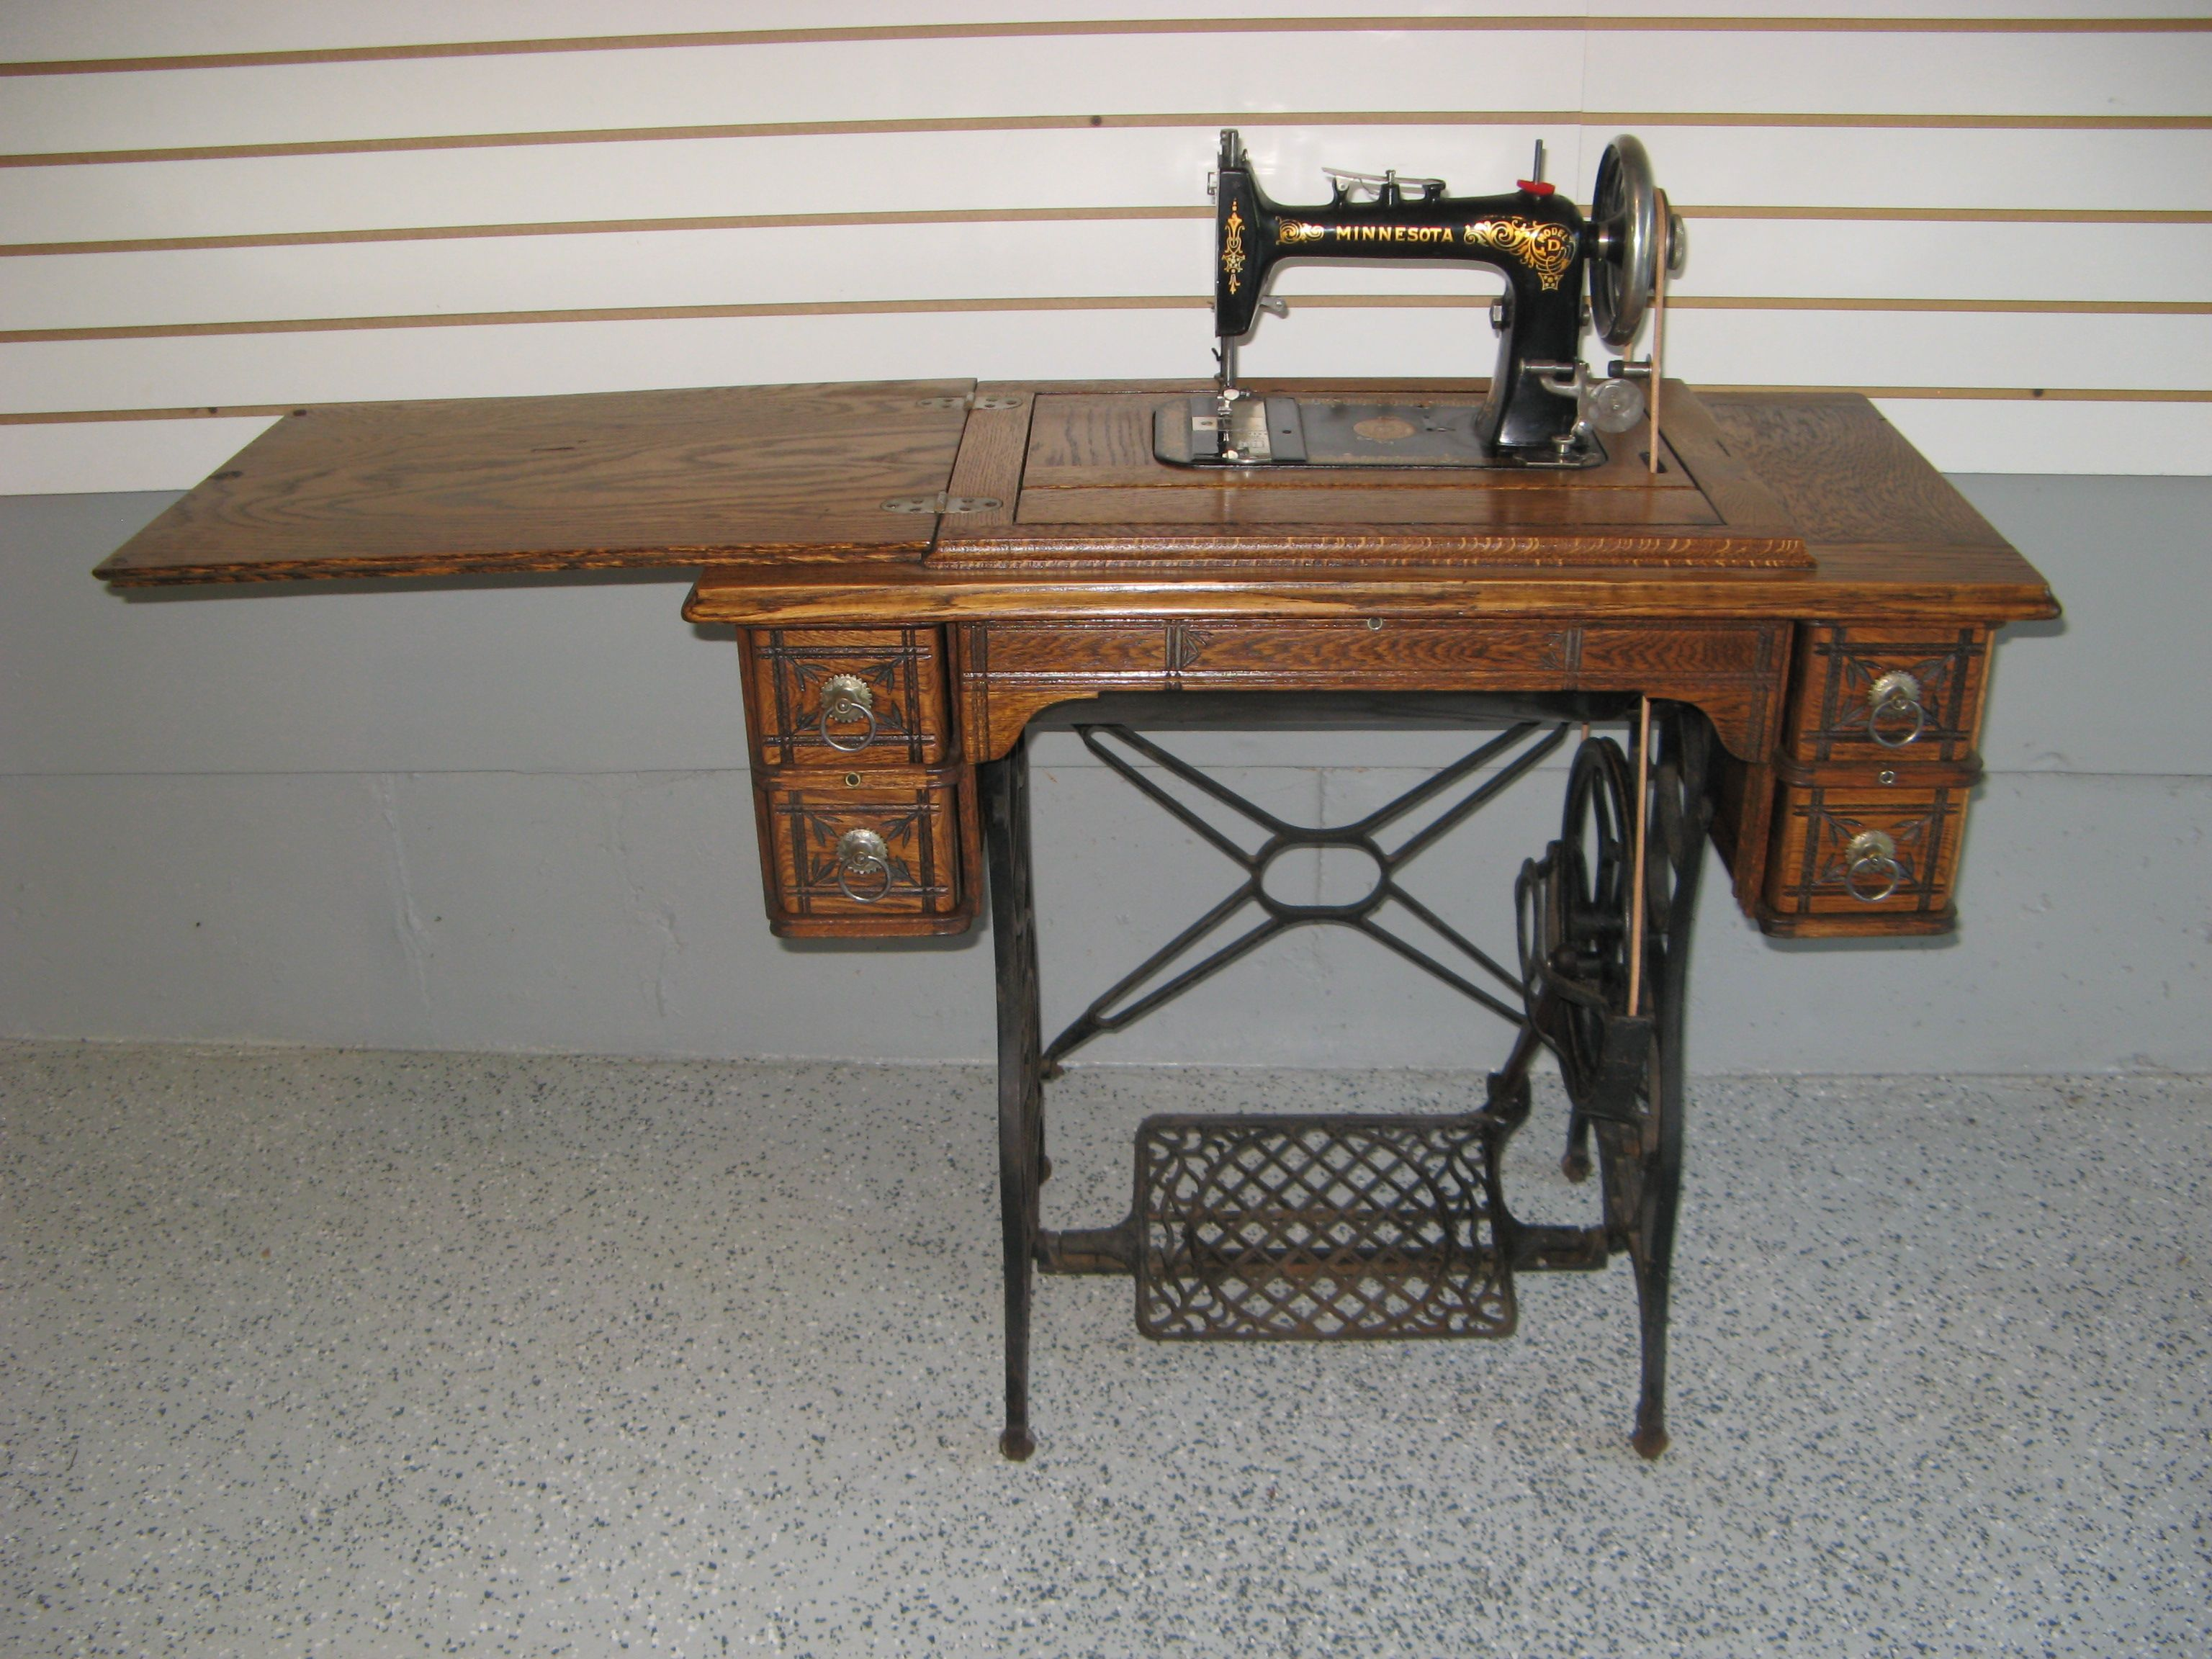 Early 1900s Minnesota D Treadle Sewing Machine And 5 Drawer Oak Cabinet After Restoration